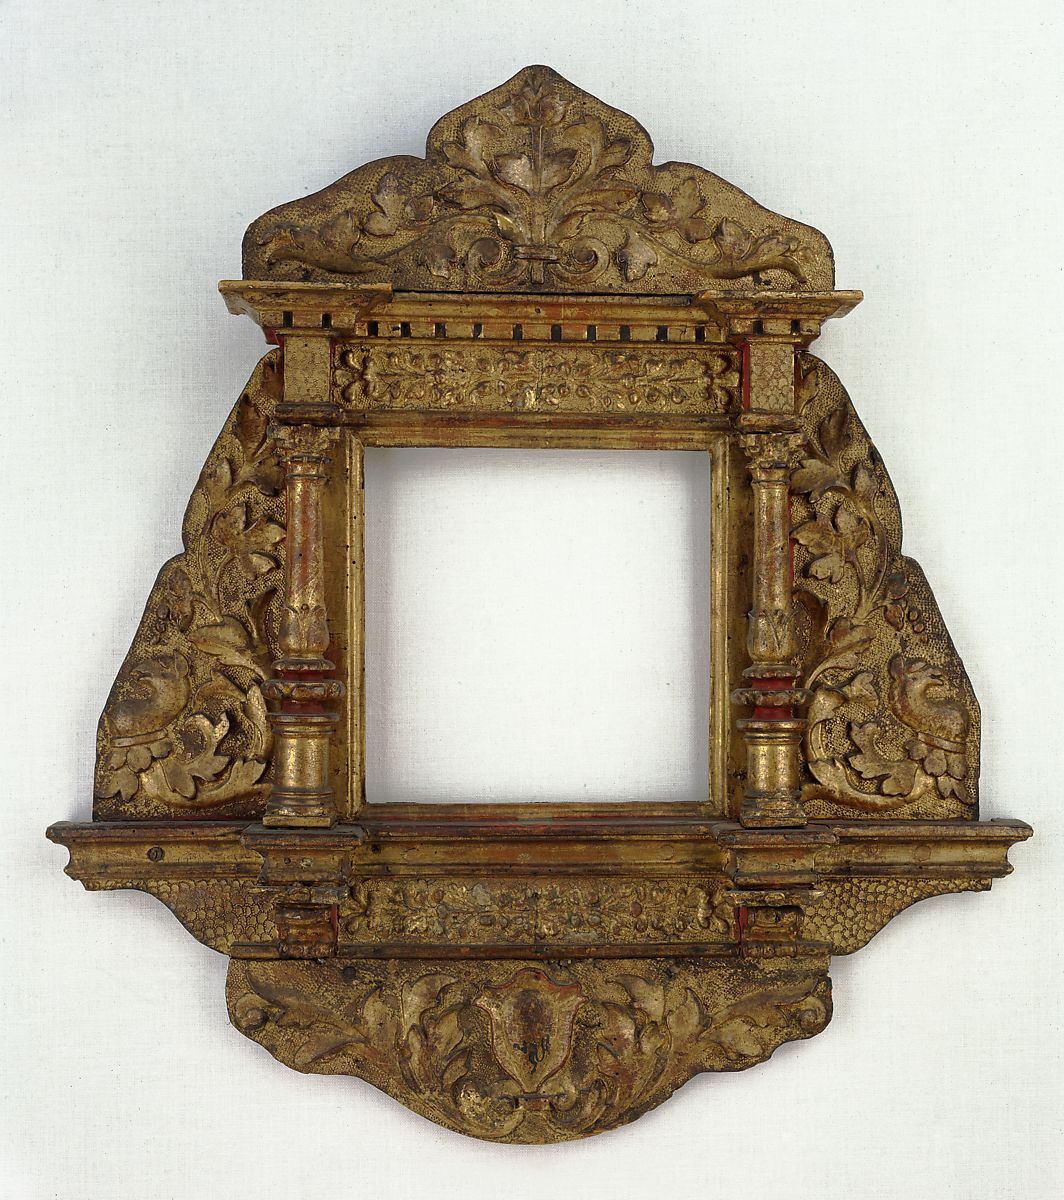 carved and gilt mirror frame